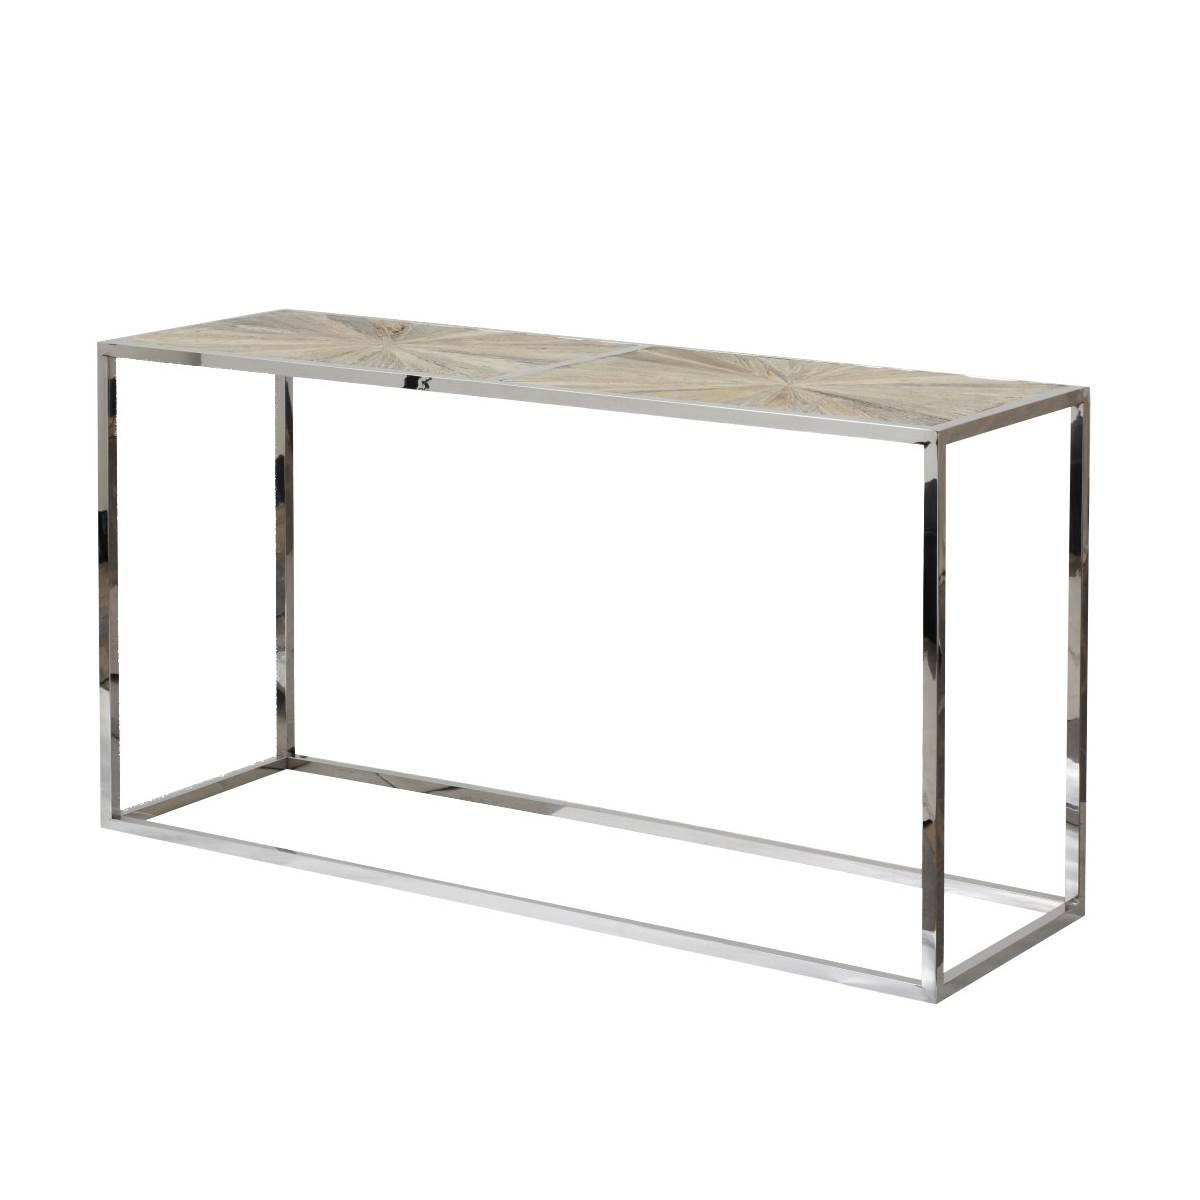 Parquet Console Table | Marshall | Pinterest Intended For Parsons Clear Glass Top & Stainless Steel Base 48x16 Console Tables (View 3 of 20)